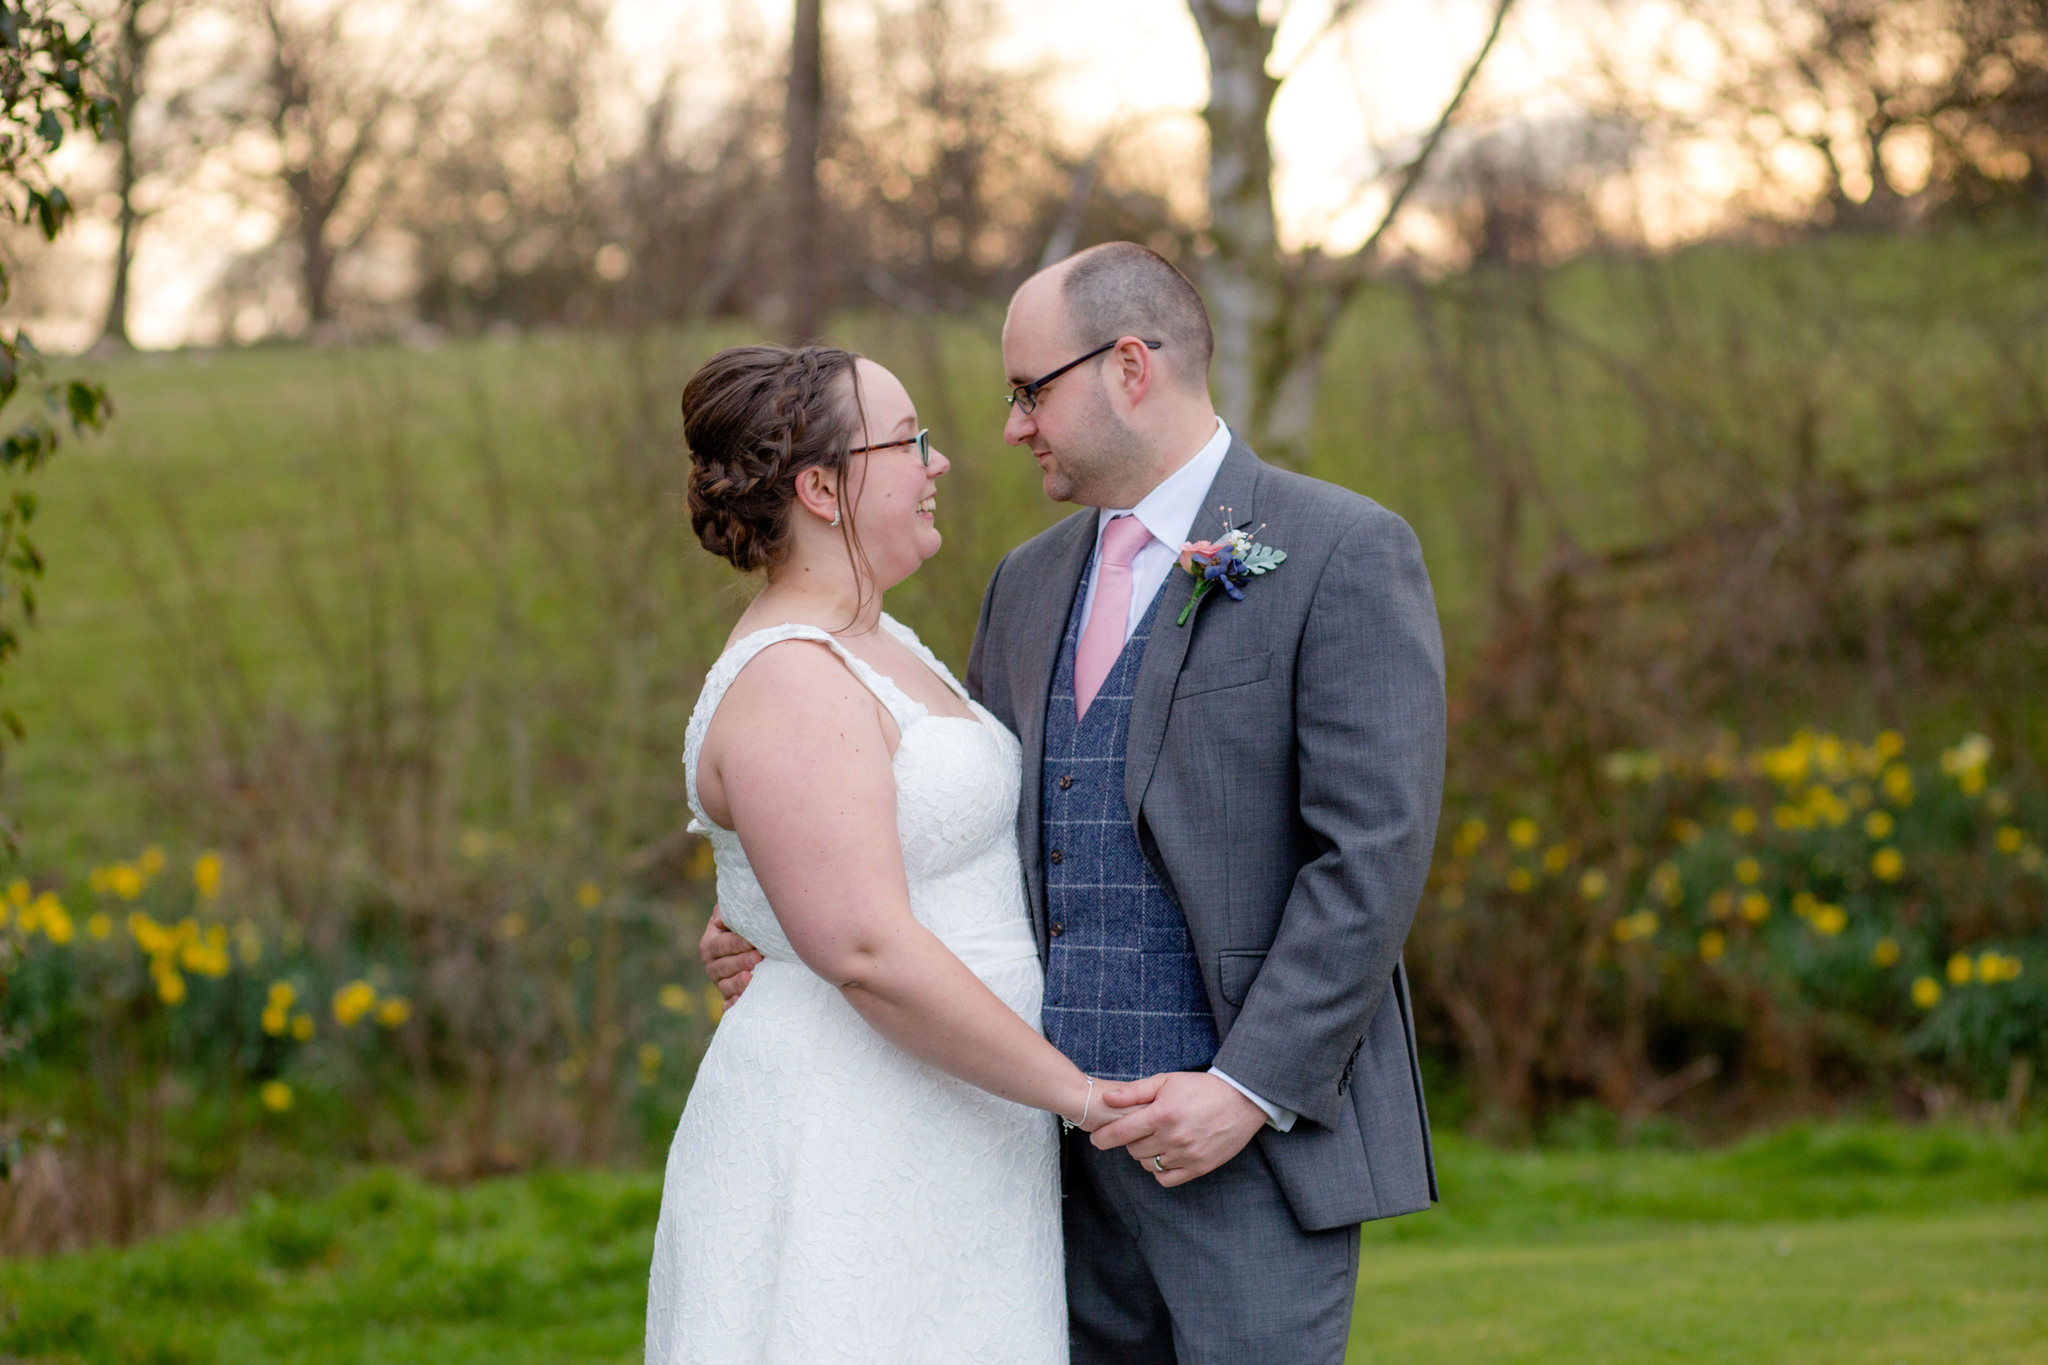 Golden hour couples portraits delbury Hall Spring wedding daffodils